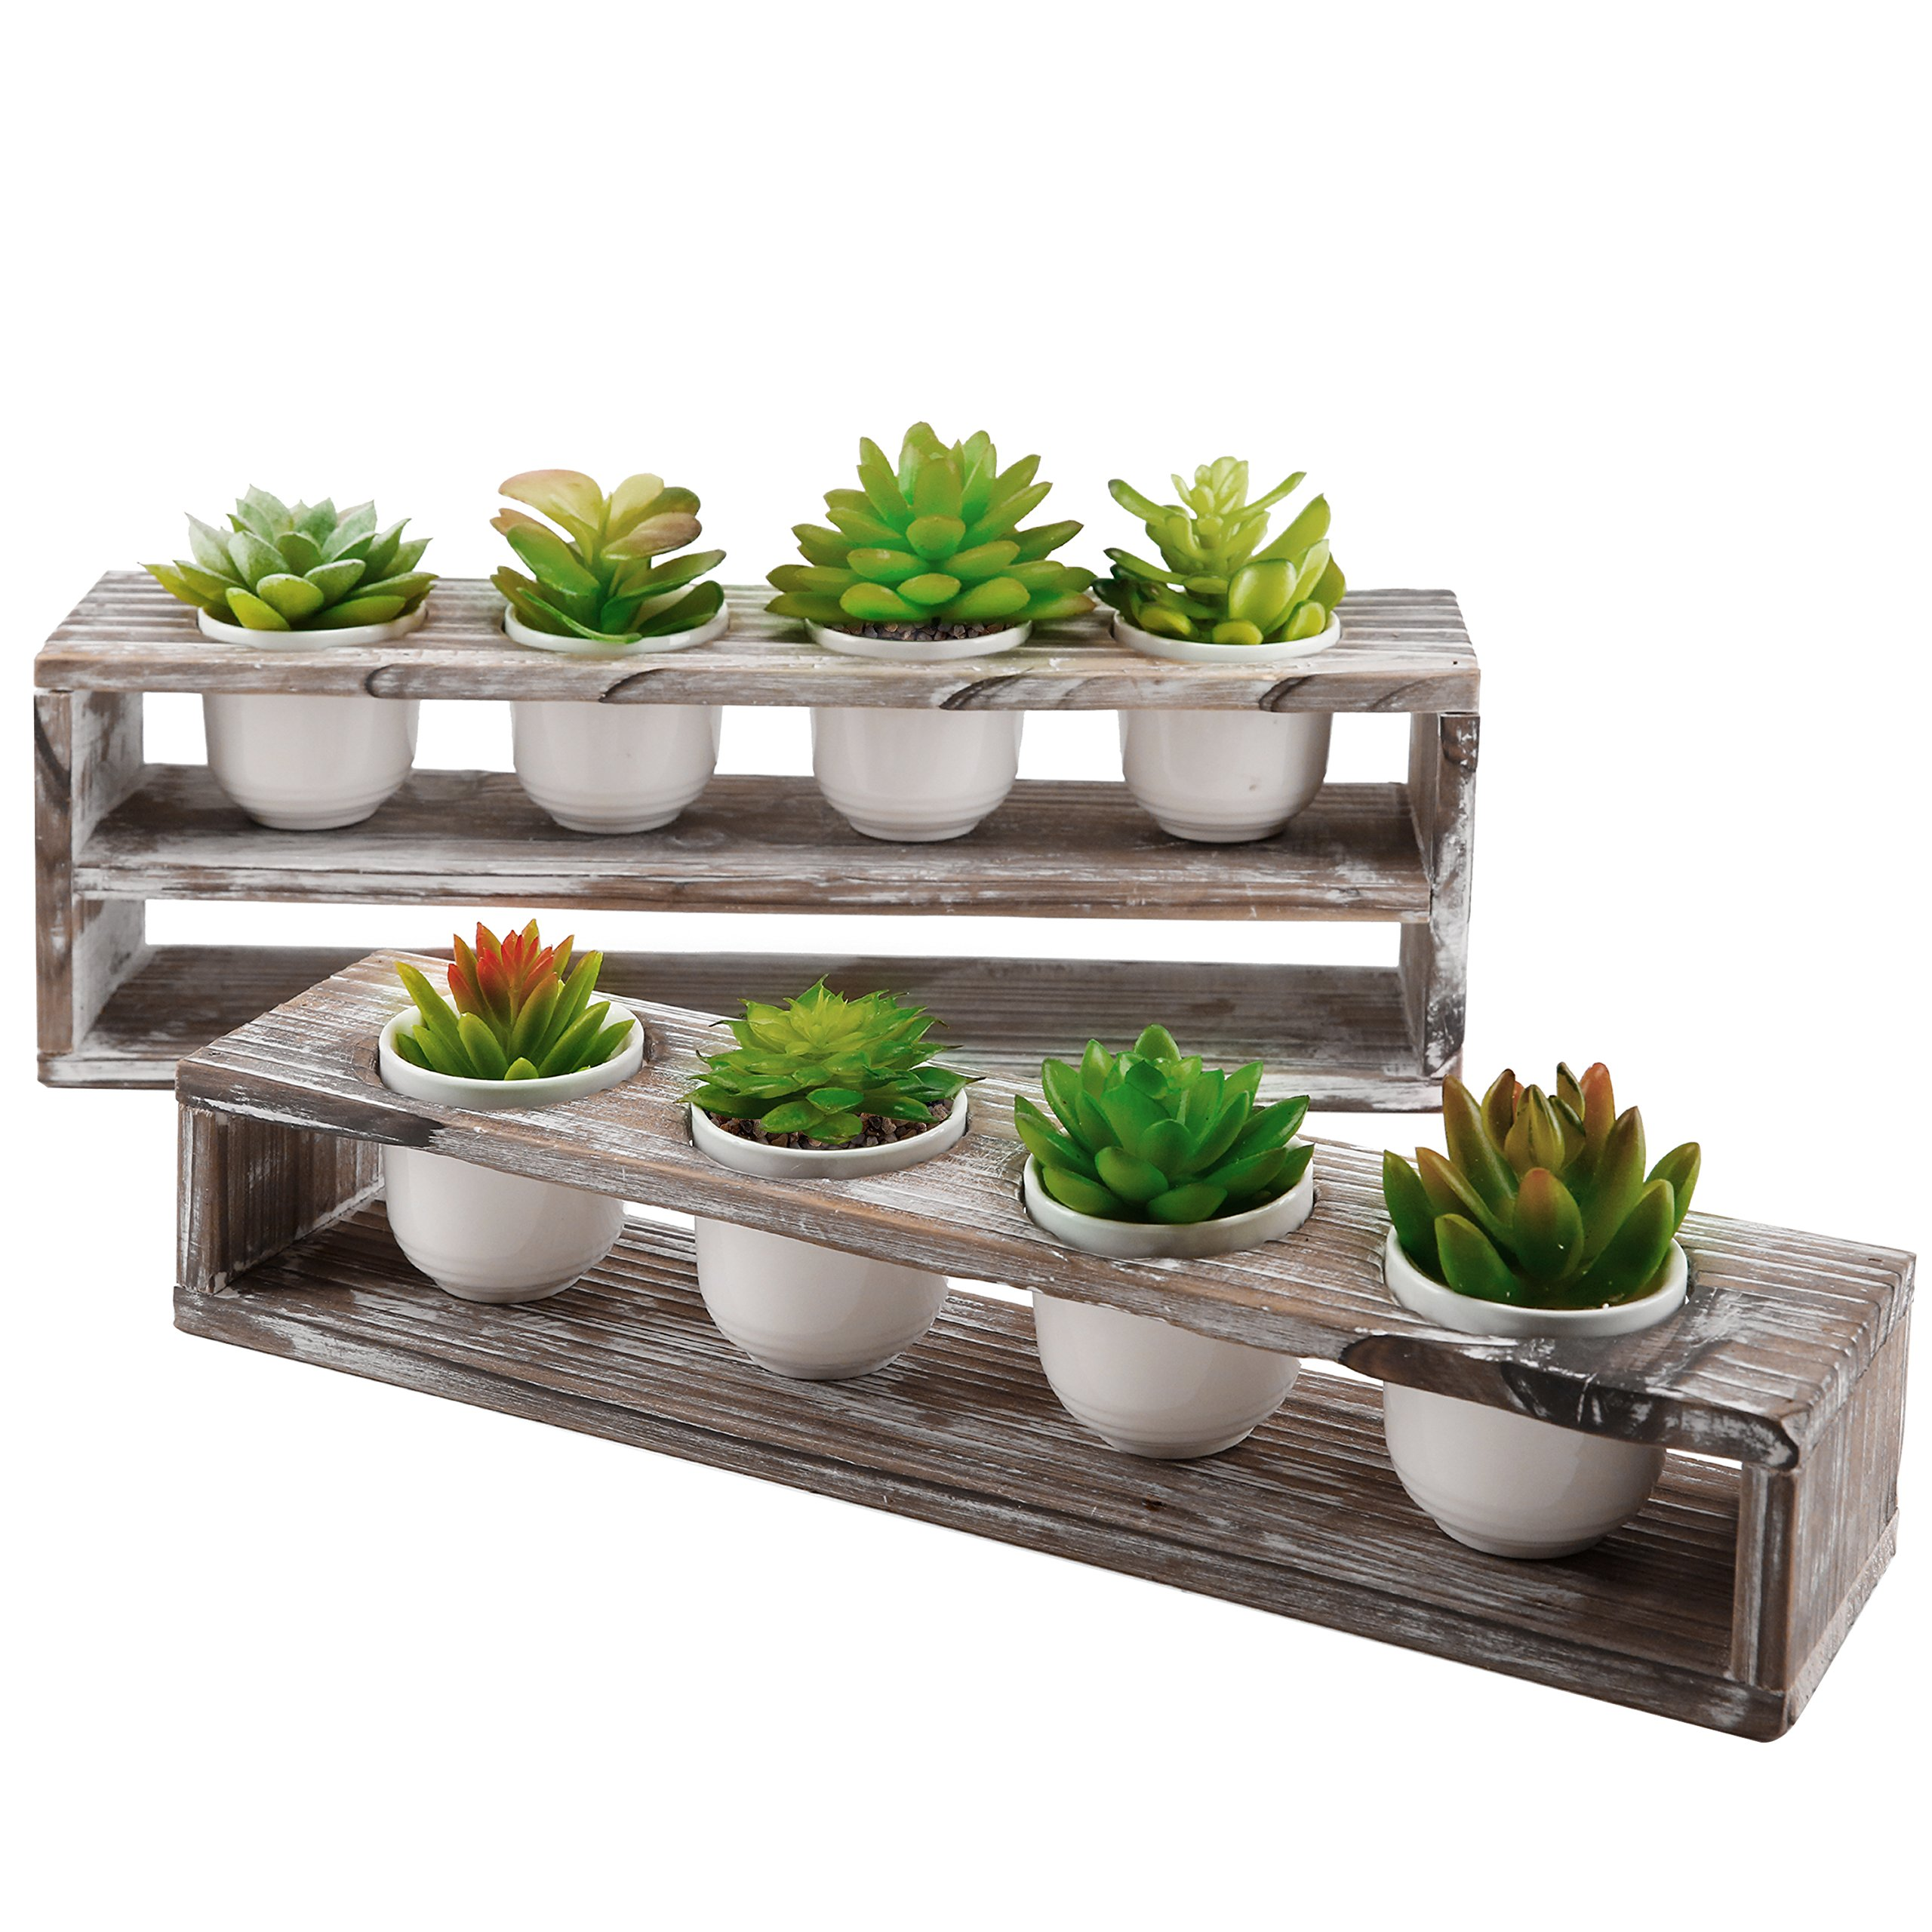 MyGift Torched Wood Tiered Succulent Planter Stand with 8 Mini White Ceramic Plant Pots, Set of 2 by MyGift